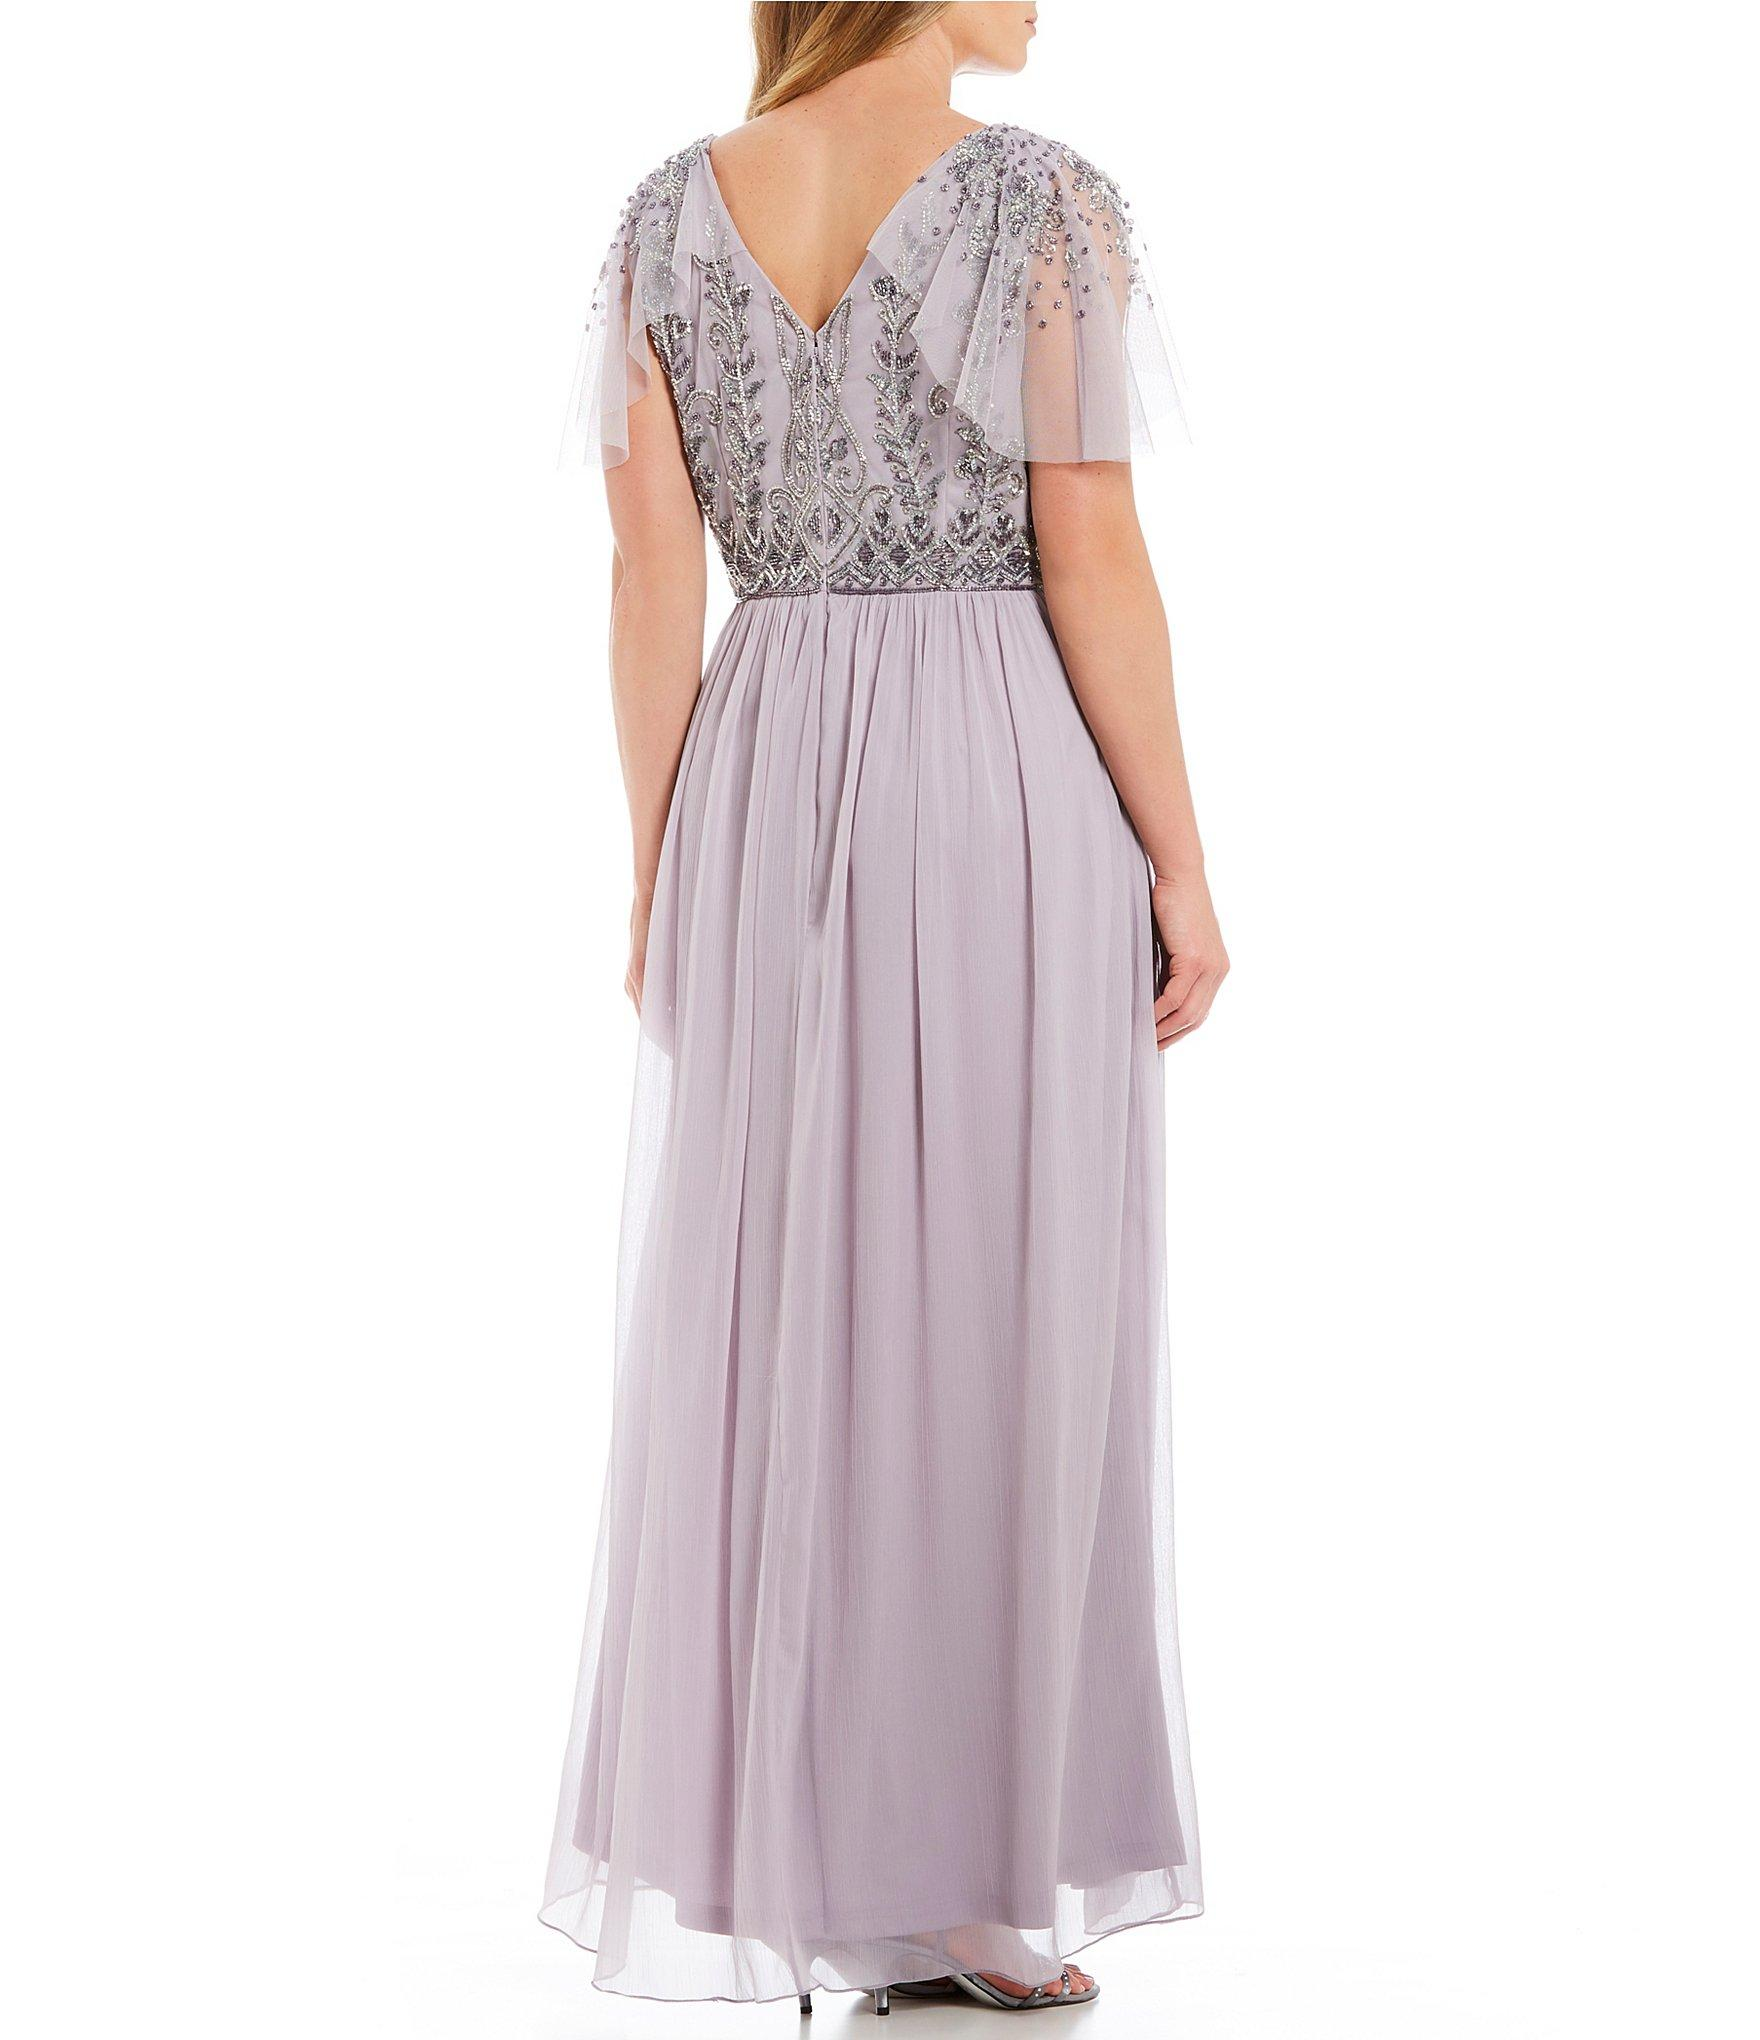 042558b412f Adrianna Papell - Gray Plus Size V-neck Flutter Sleeve Beaded Bodice Gown -  Lyst. View fullscreen